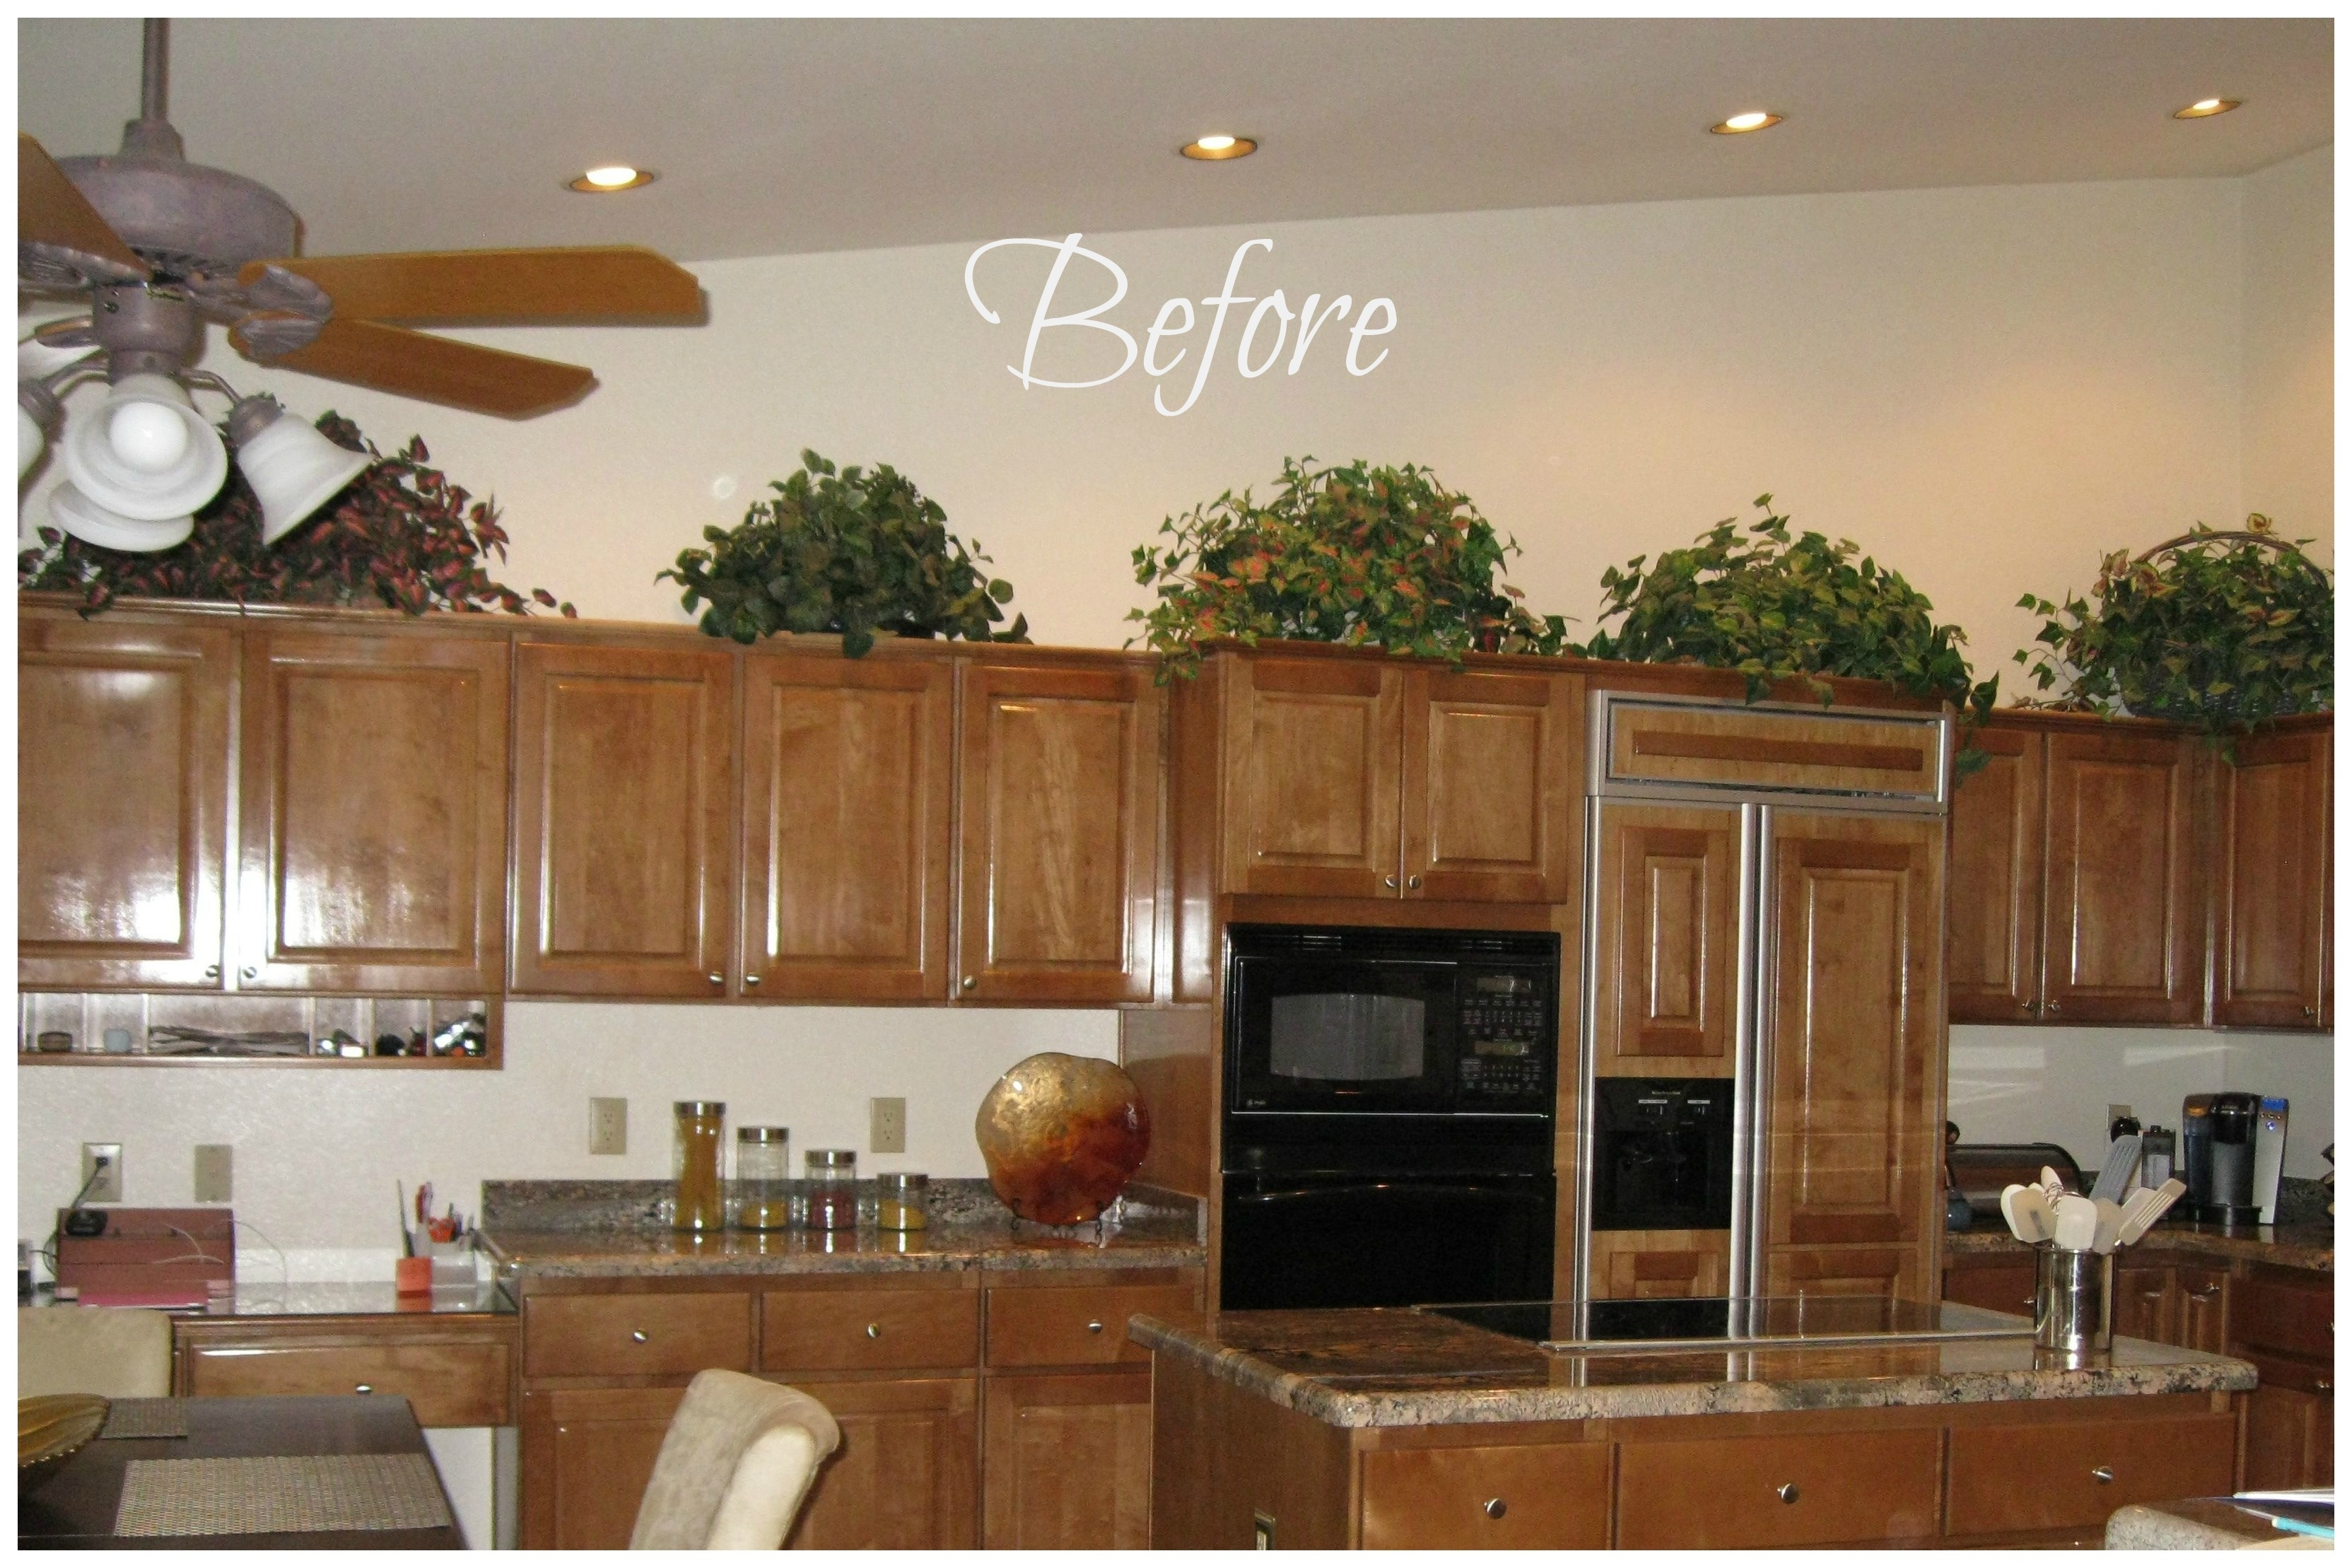 Decorate Over Cabinets Kitchens